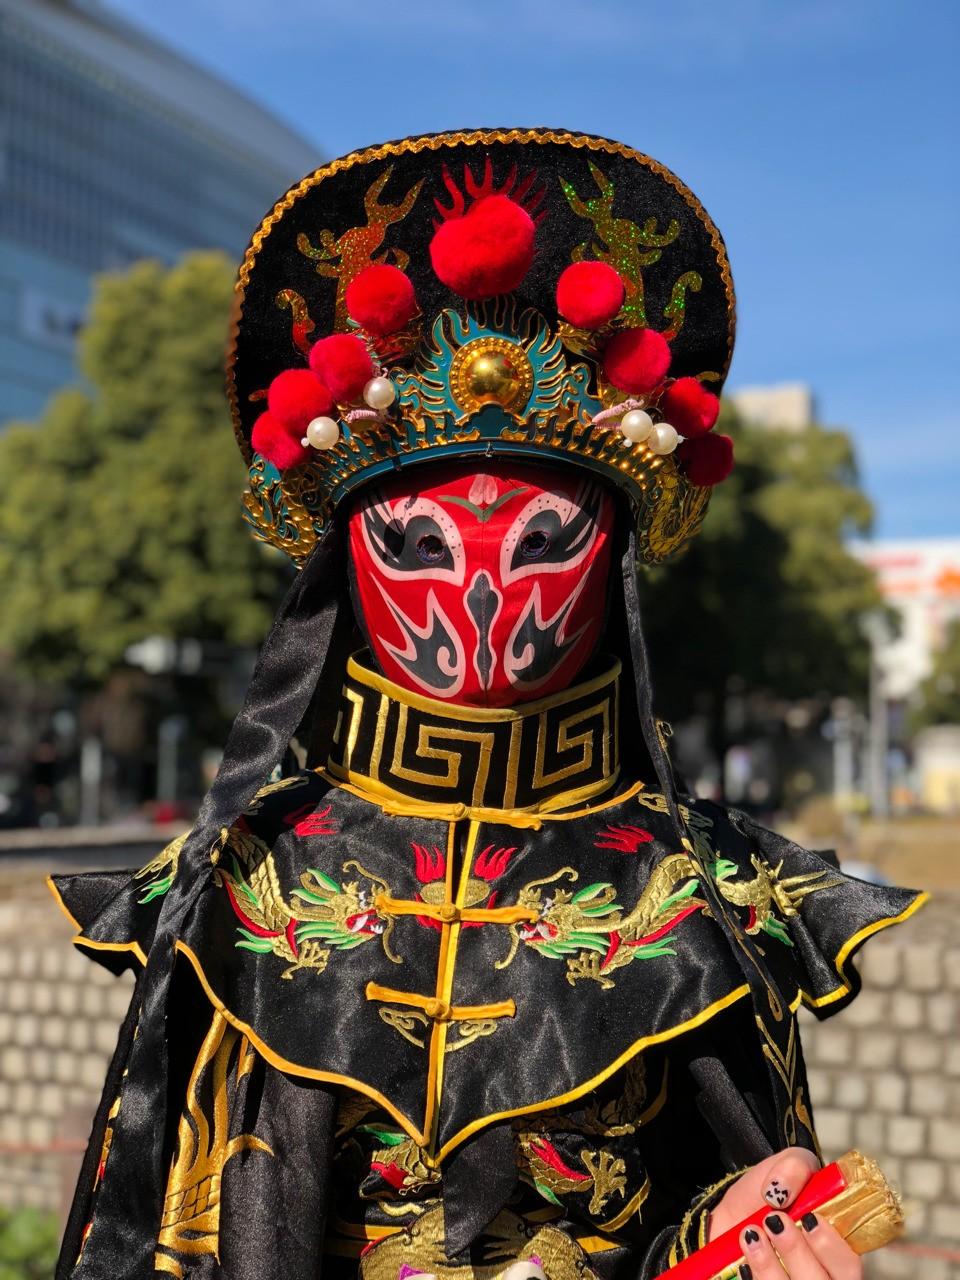 At a Chinese Festival in Japan. Title: The Mask iPhone X portrait mode January 7, 2018